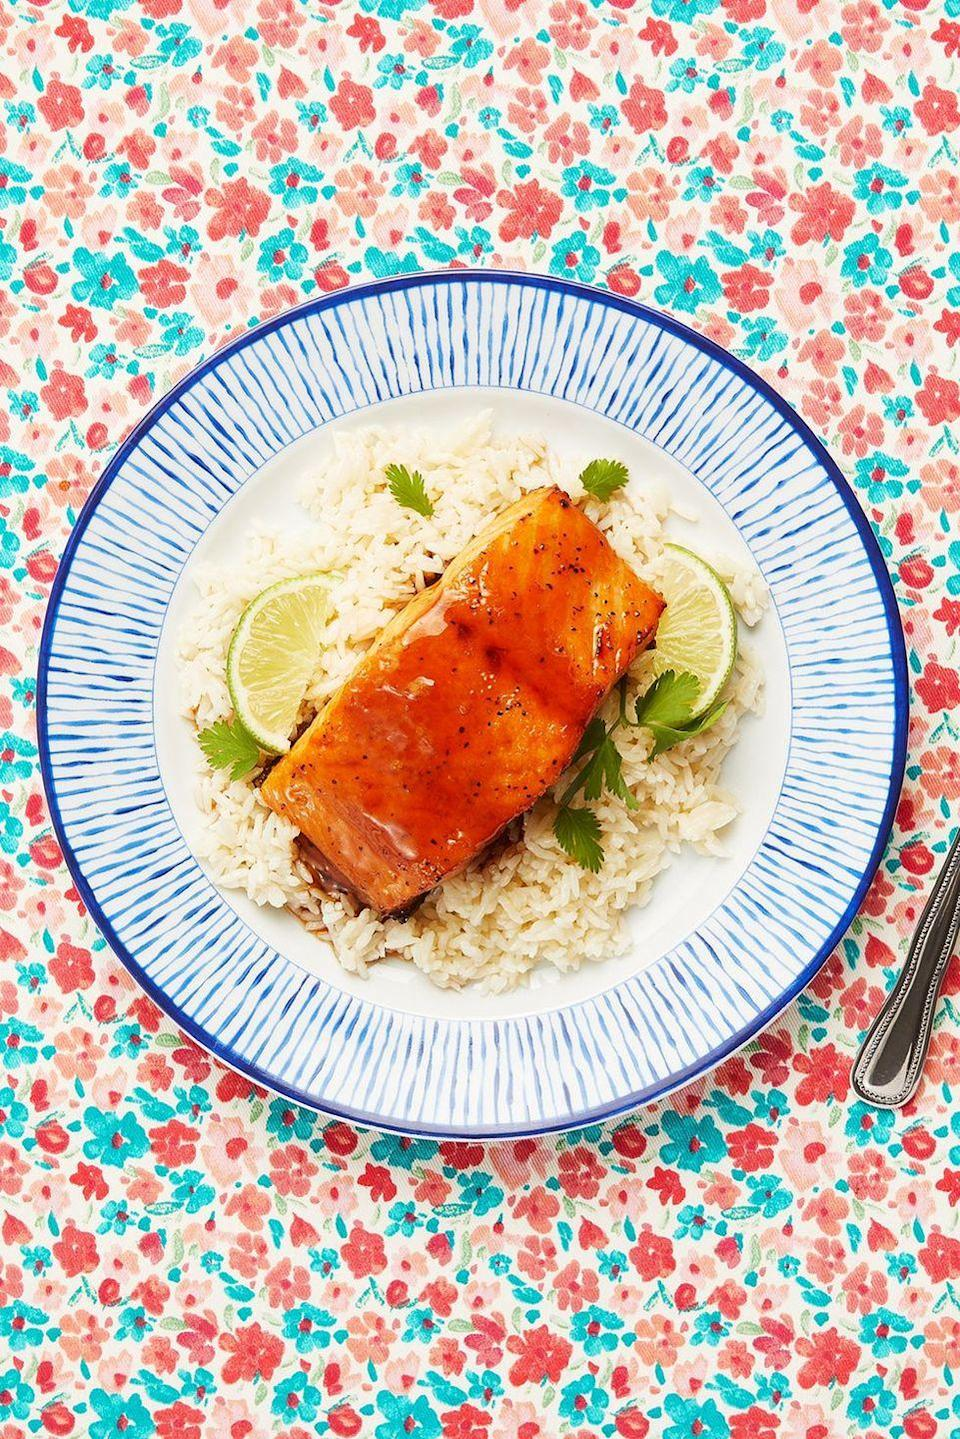 """<p>If you're in the market for an easy, reliable salmon recipe to make again and again, look no further. Ree's go-to method involves pan-frying the fish, then using the same skillet to make a sticky, flavorful glaze. The whole process takes just 15 minutes!</p><p><a href=""""https://www.thepioneerwoman.com/food-cooking/recipes/a86550/honey-soy-salmon/"""" rel=""""nofollow noopener"""" target=""""_blank"""" data-ylk=""""slk:Get Ree's recipe."""" class=""""link rapid-noclick-resp""""><strong>Get Ree's recipe.</strong></a></p><p><a class=""""link rapid-noclick-resp"""" href=""""https://go.redirectingat.com?id=74968X1596630&url=https%3A%2F%2Fwww.walmart.com%2Fbrowse%2Fhome%2Fskillets-frying-pans%2F4044_623679_8140341_1675139&sref=https%3A%2F%2Fwww.thepioneerwoman.com%2Ffood-cooking%2Fmeals-menus%2Fg37023193%2Fsalmon-recipes%2F"""" rel=""""nofollow noopener"""" target=""""_blank"""" data-ylk=""""slk:SHOP SKILLETS"""">SHOP SKILLETS</a></p>"""